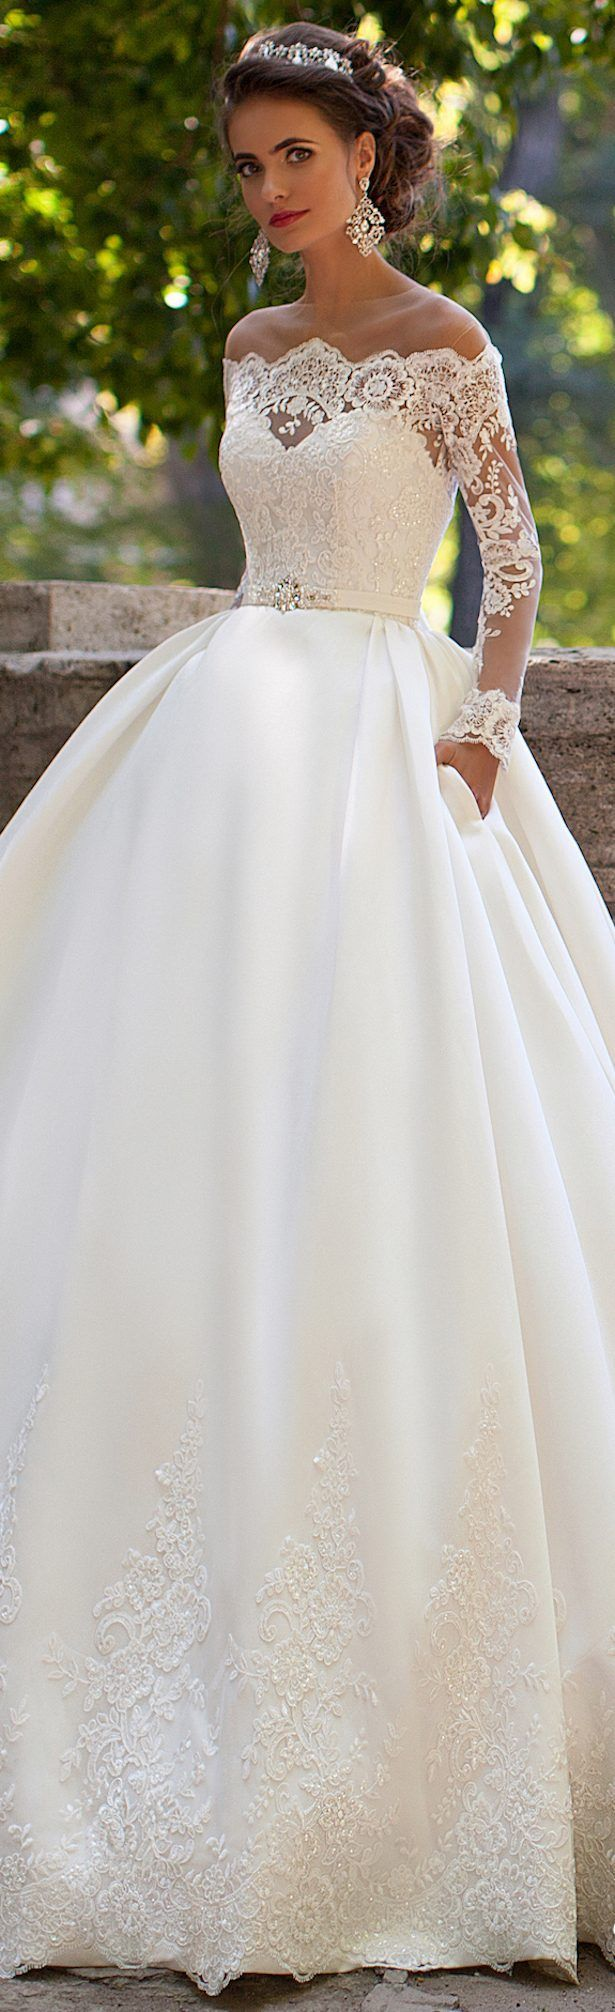 Best 25+ Best wedding dresses ideas on Pinterest